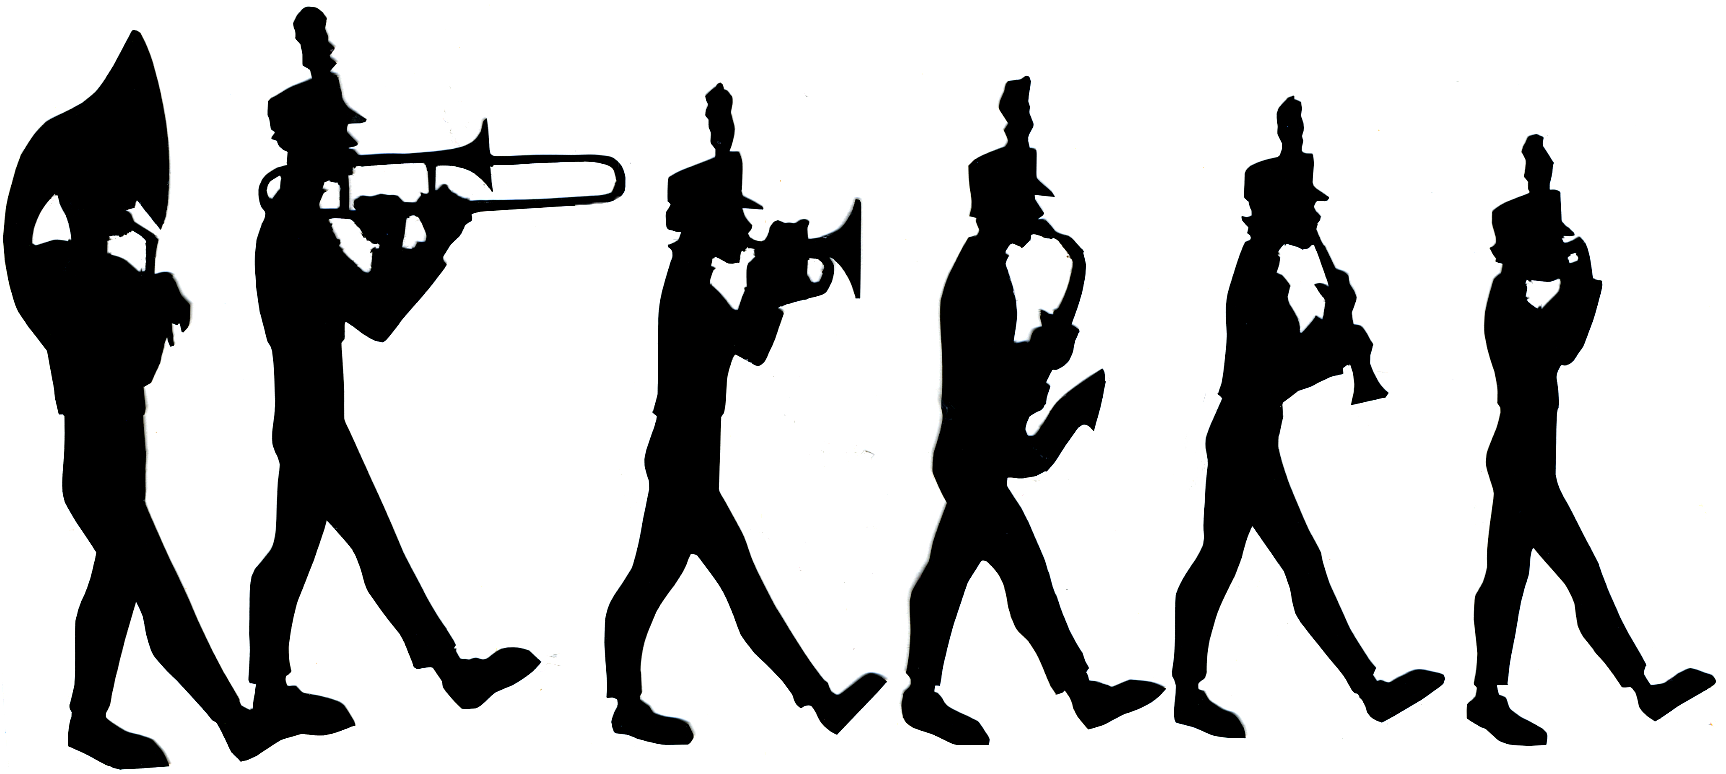 Free People Marching Cliparts, Download Free Clip Art, Free.